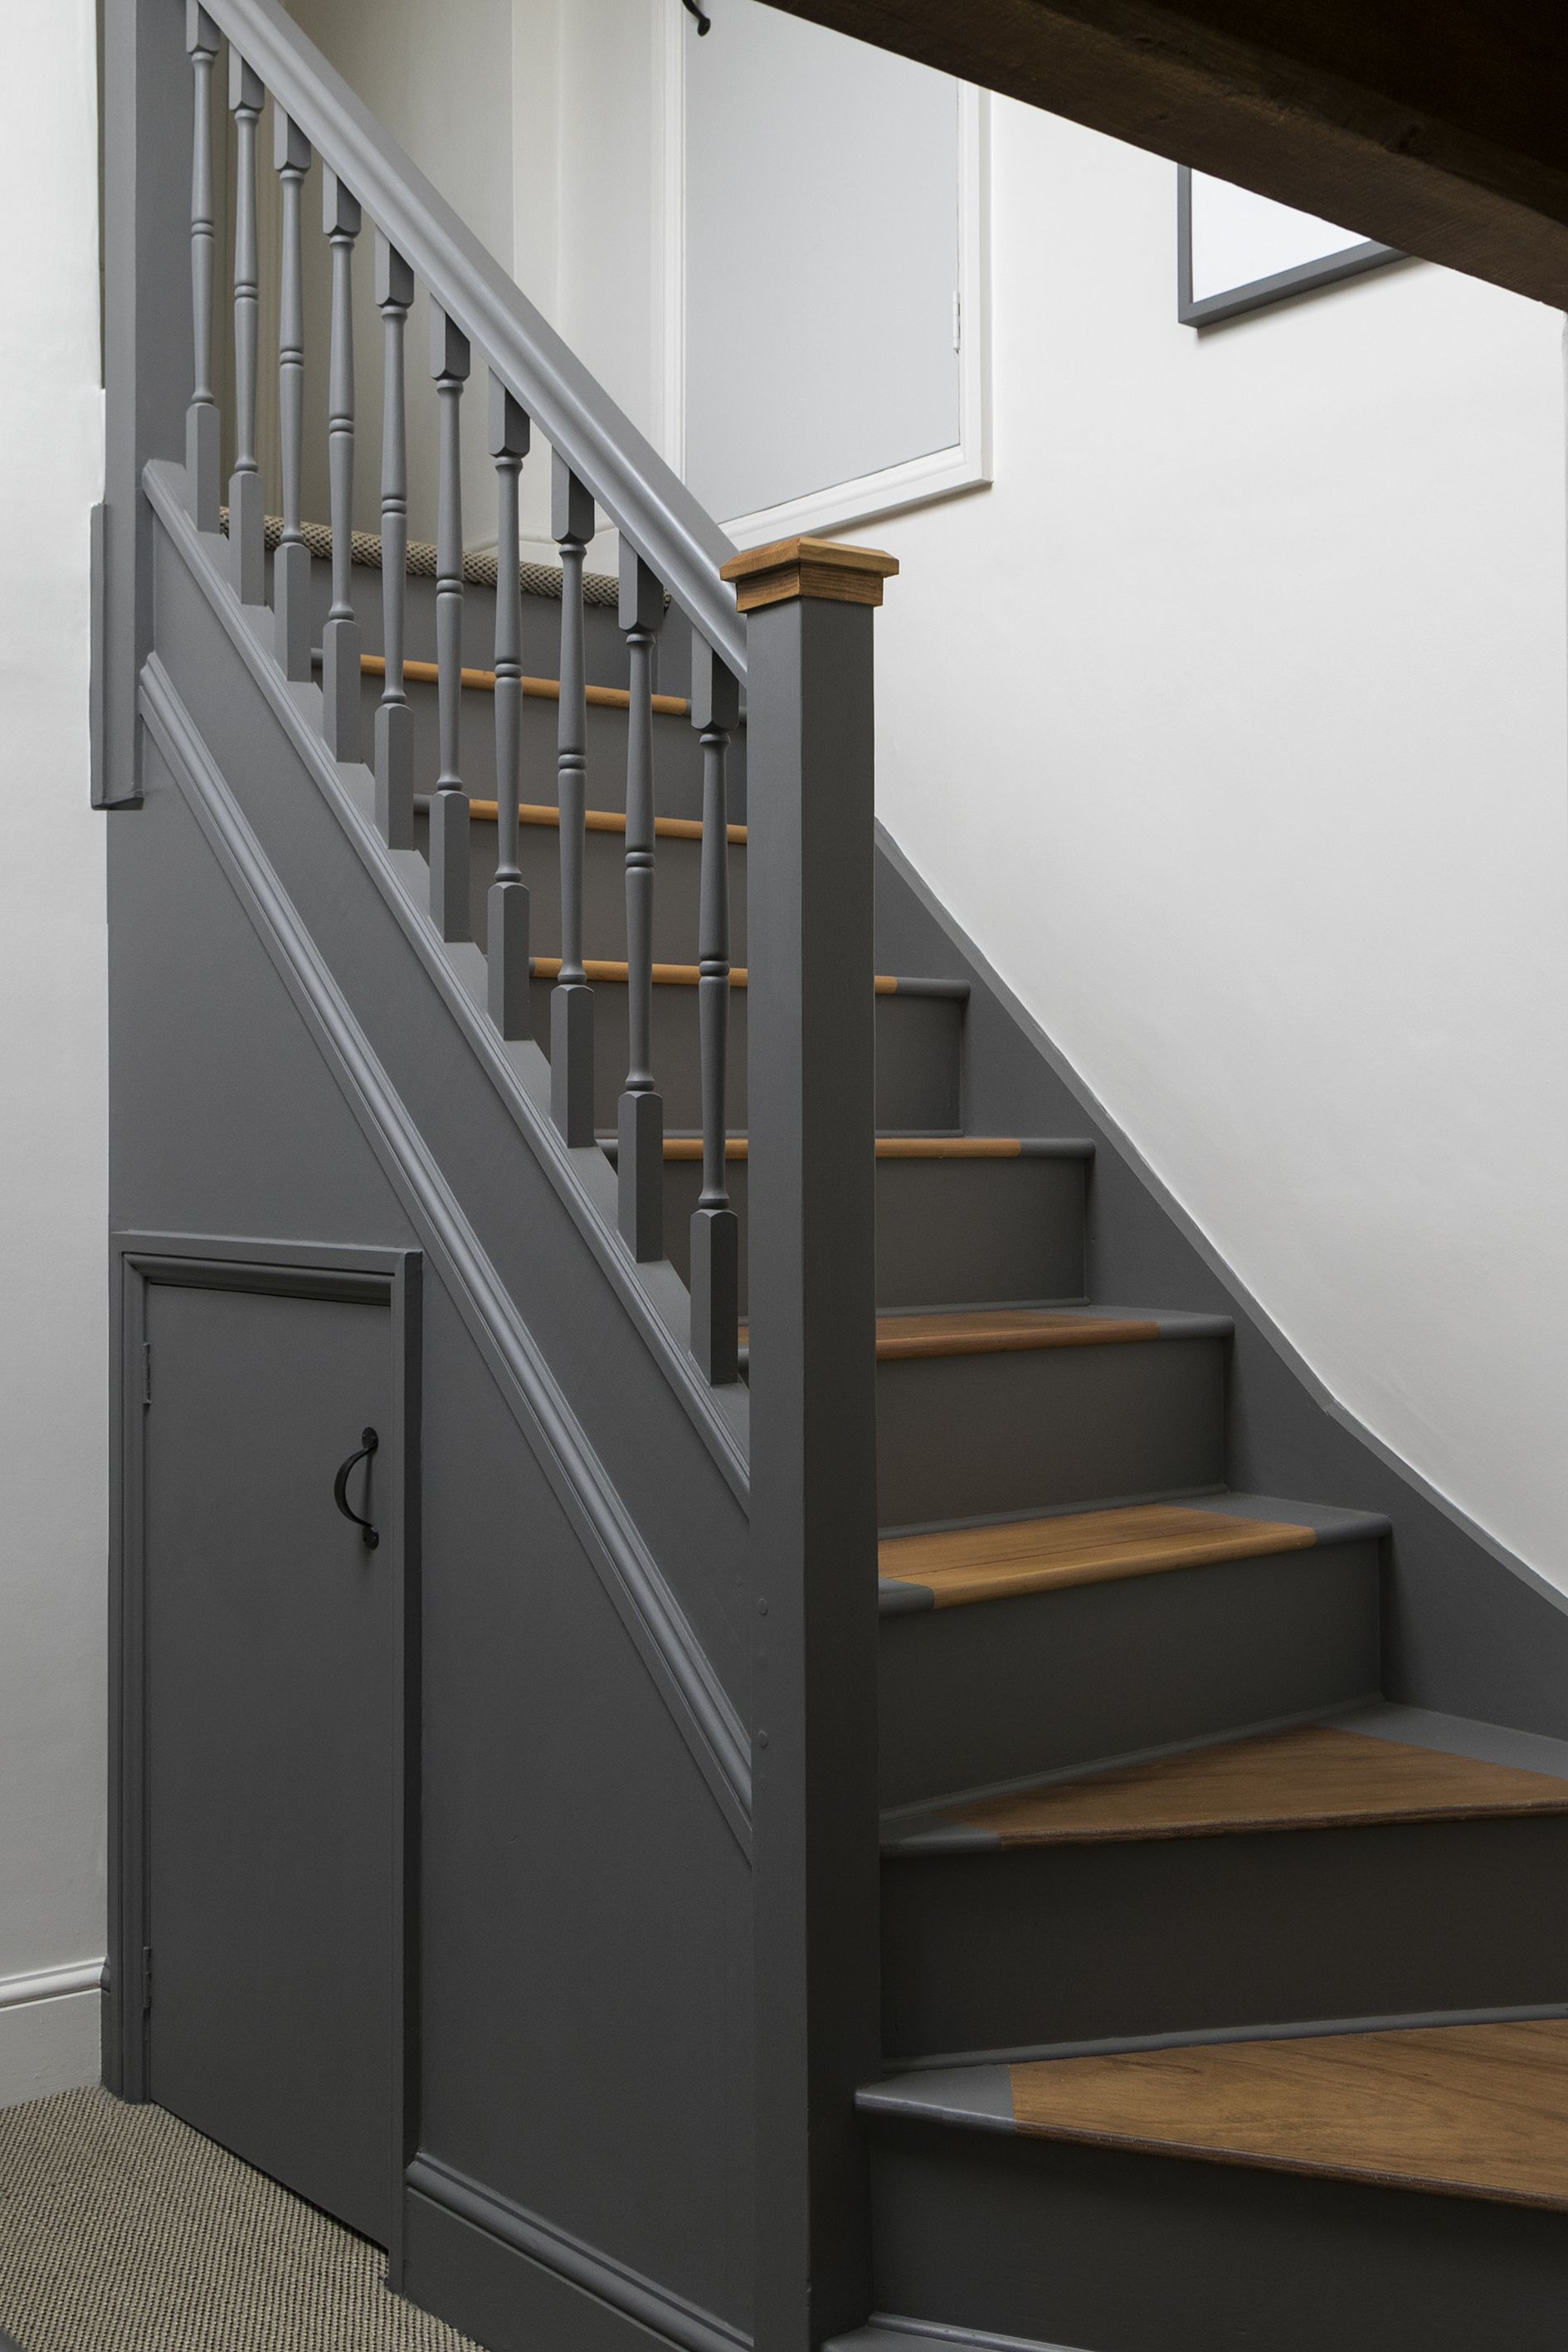 Best Second Floor Stairwell Walls And Staircase Painted Using Little Greene Linen Wash And Dark Lead 400 x 300